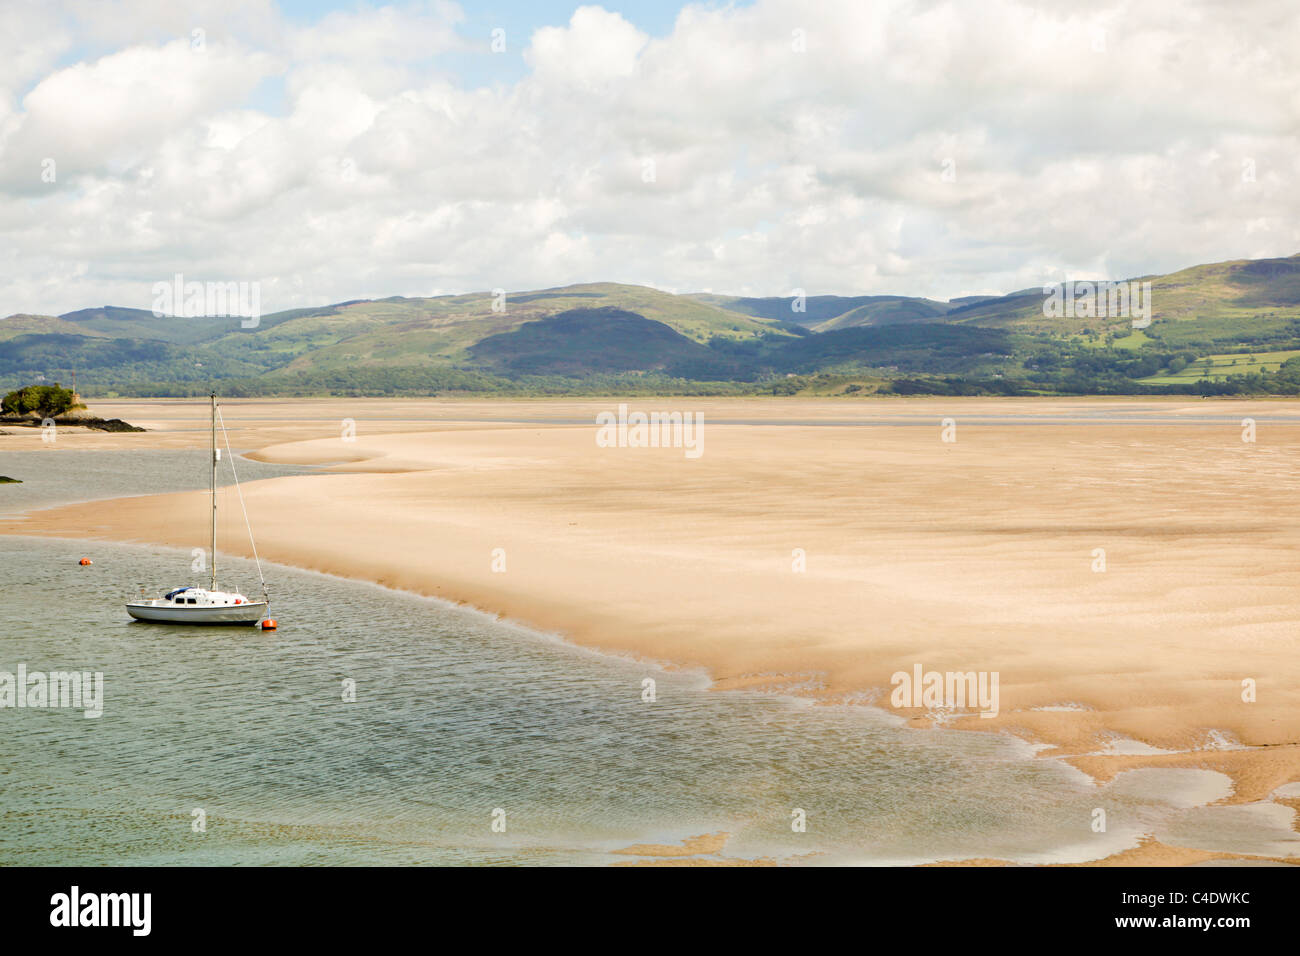 The coastline of Aberdovey (Aberdyfi) in Wales. Stock Photo